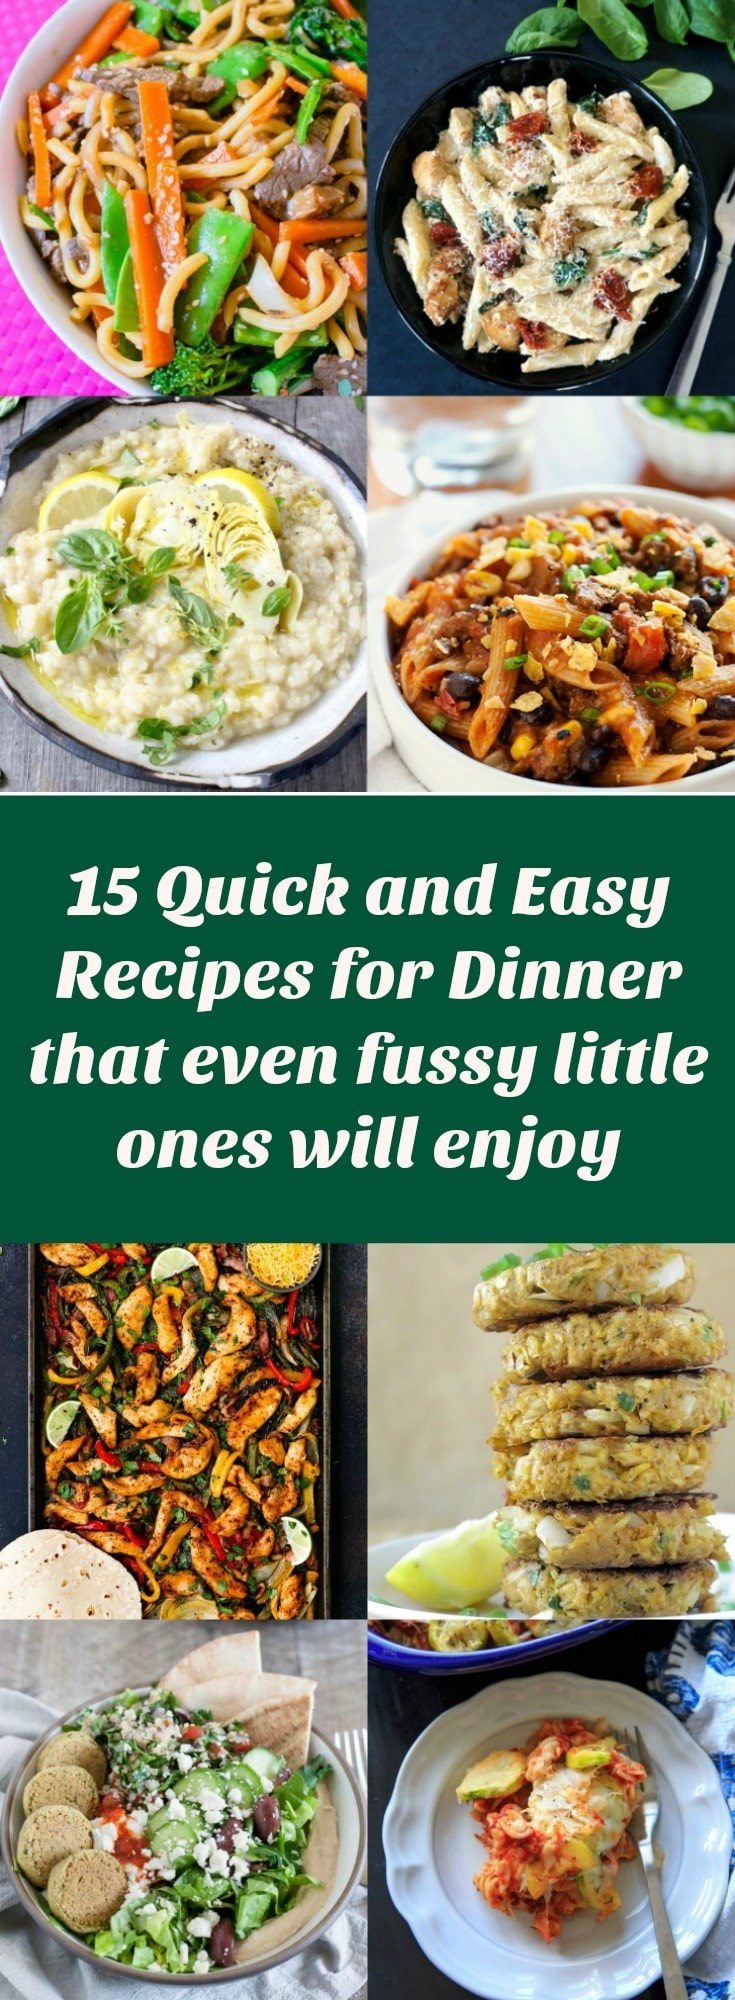 15 Quick And Cute Hairstyles For University Girls: 15 Quick And Easy Recipes For Dinner That Even Fussy